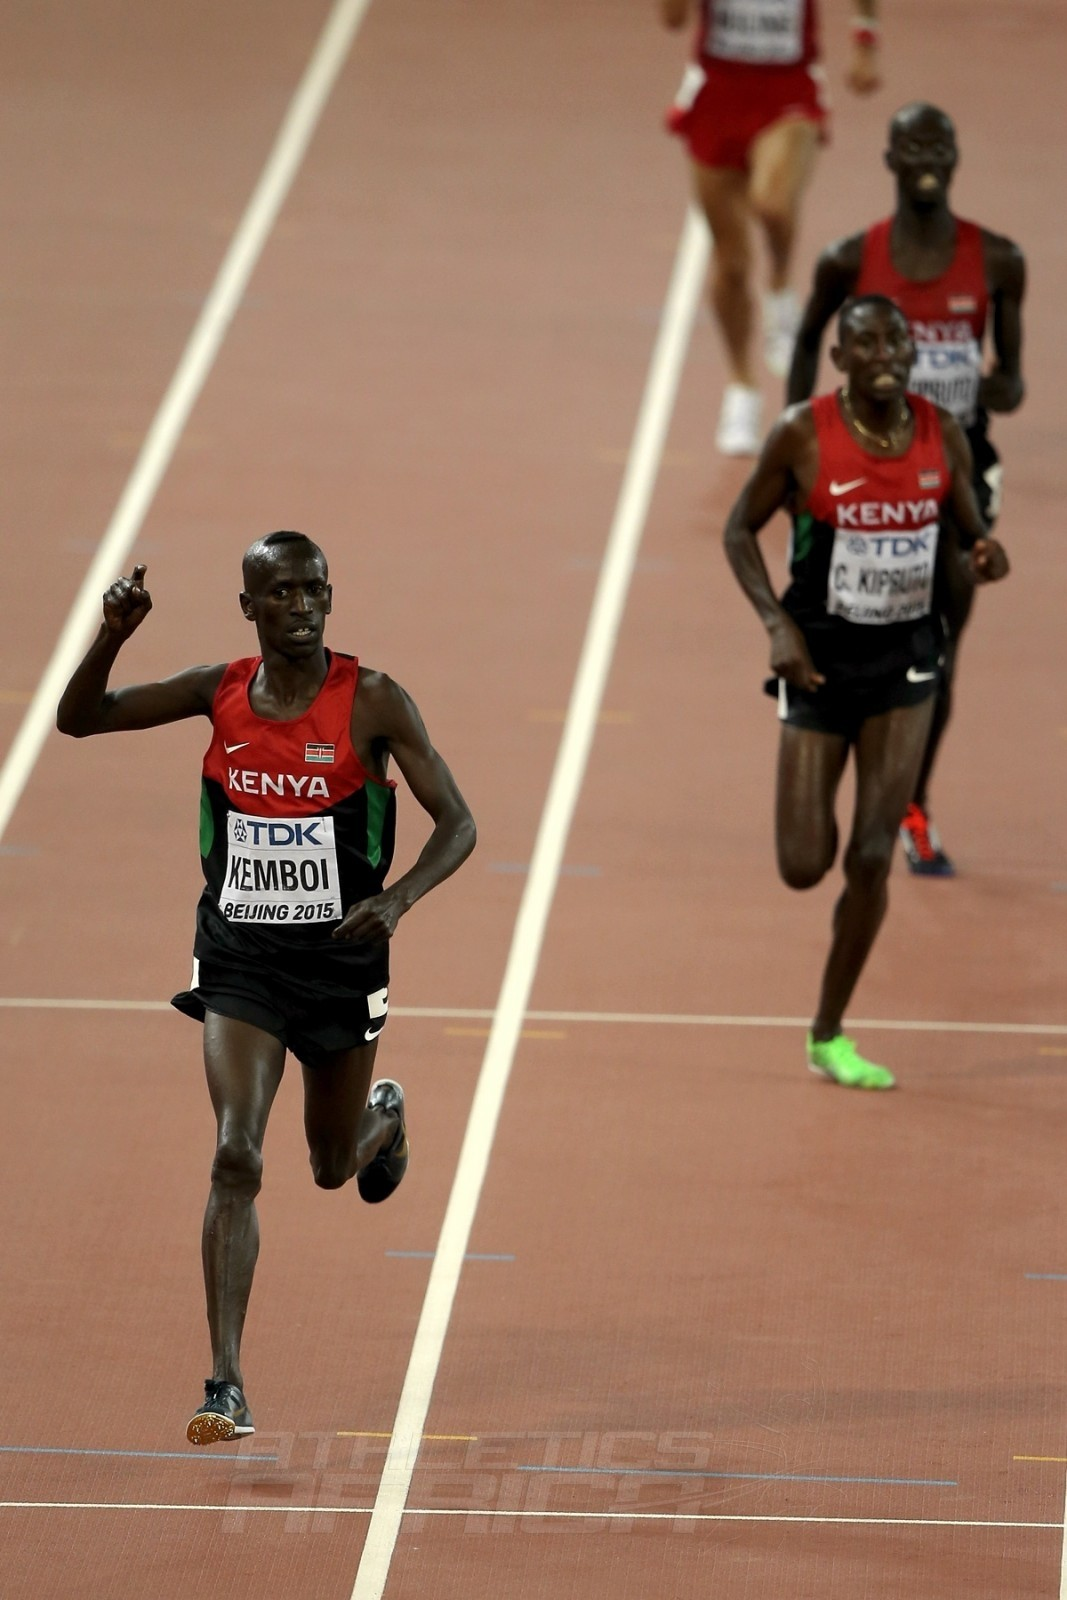 Ezekiel Kemboi of Kenya crosses the finish line to win gold in the Men's 3000 metres steeplechase final during day three of the 15th IAAF World Athletics Championships Beijing 2015 at Beijing National Stadium on August 24, 2015 in Beijing, China. (Photo by Lintao Zhang/Getty Images for IAAF)